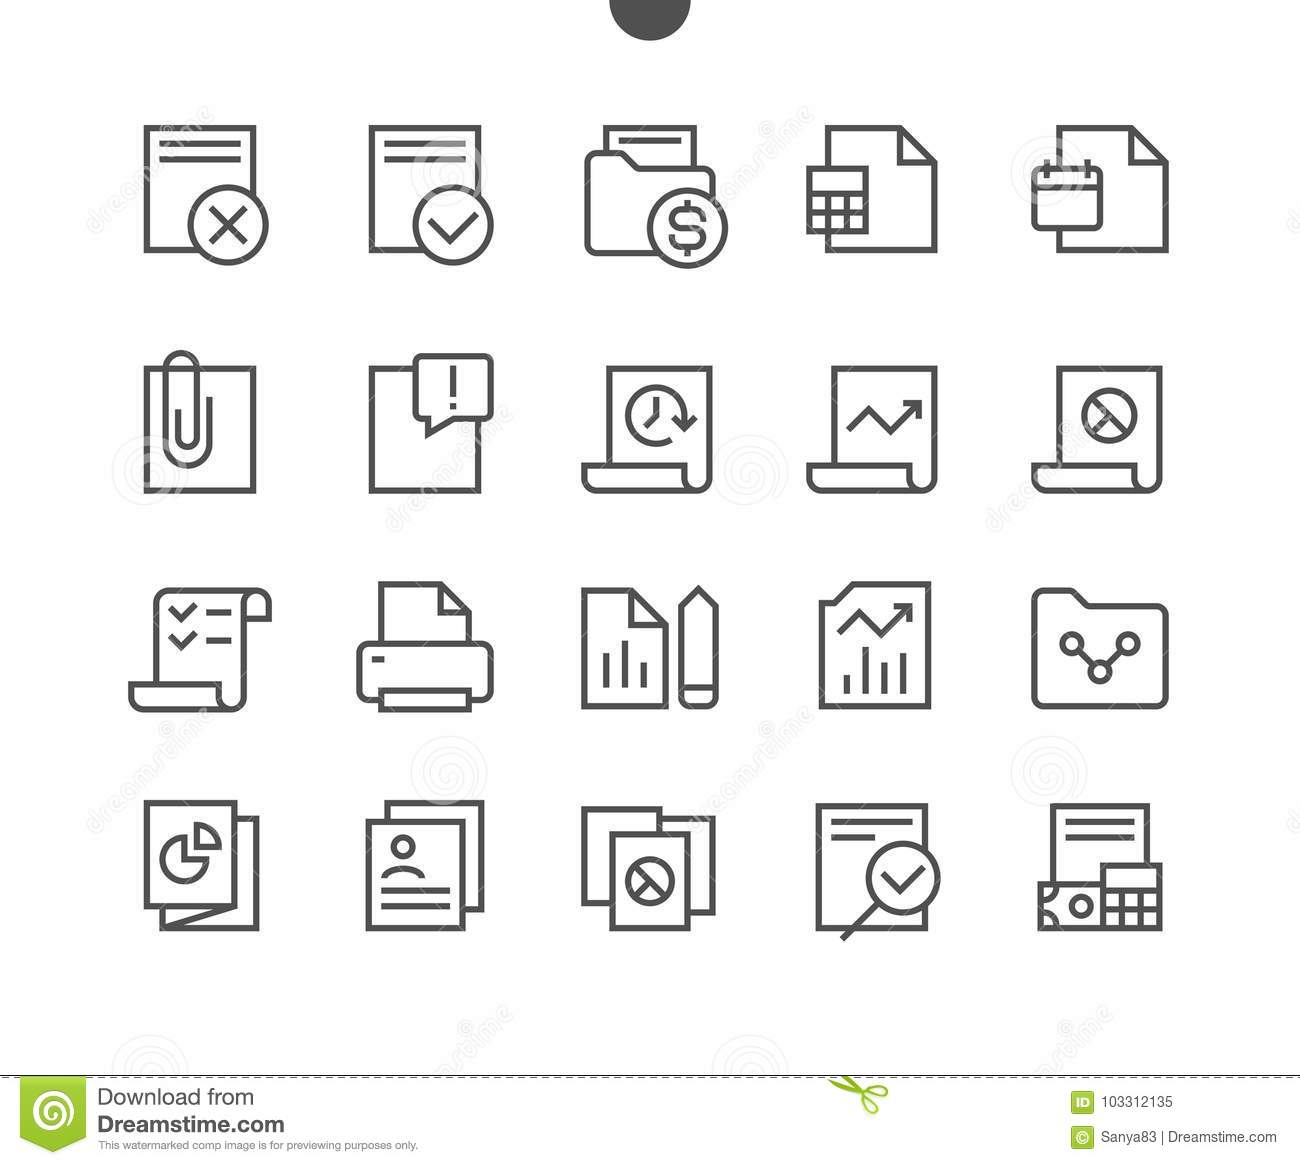 Report UI Pixel Perfect Well-crafted Vector Thin Line Icons 48x48